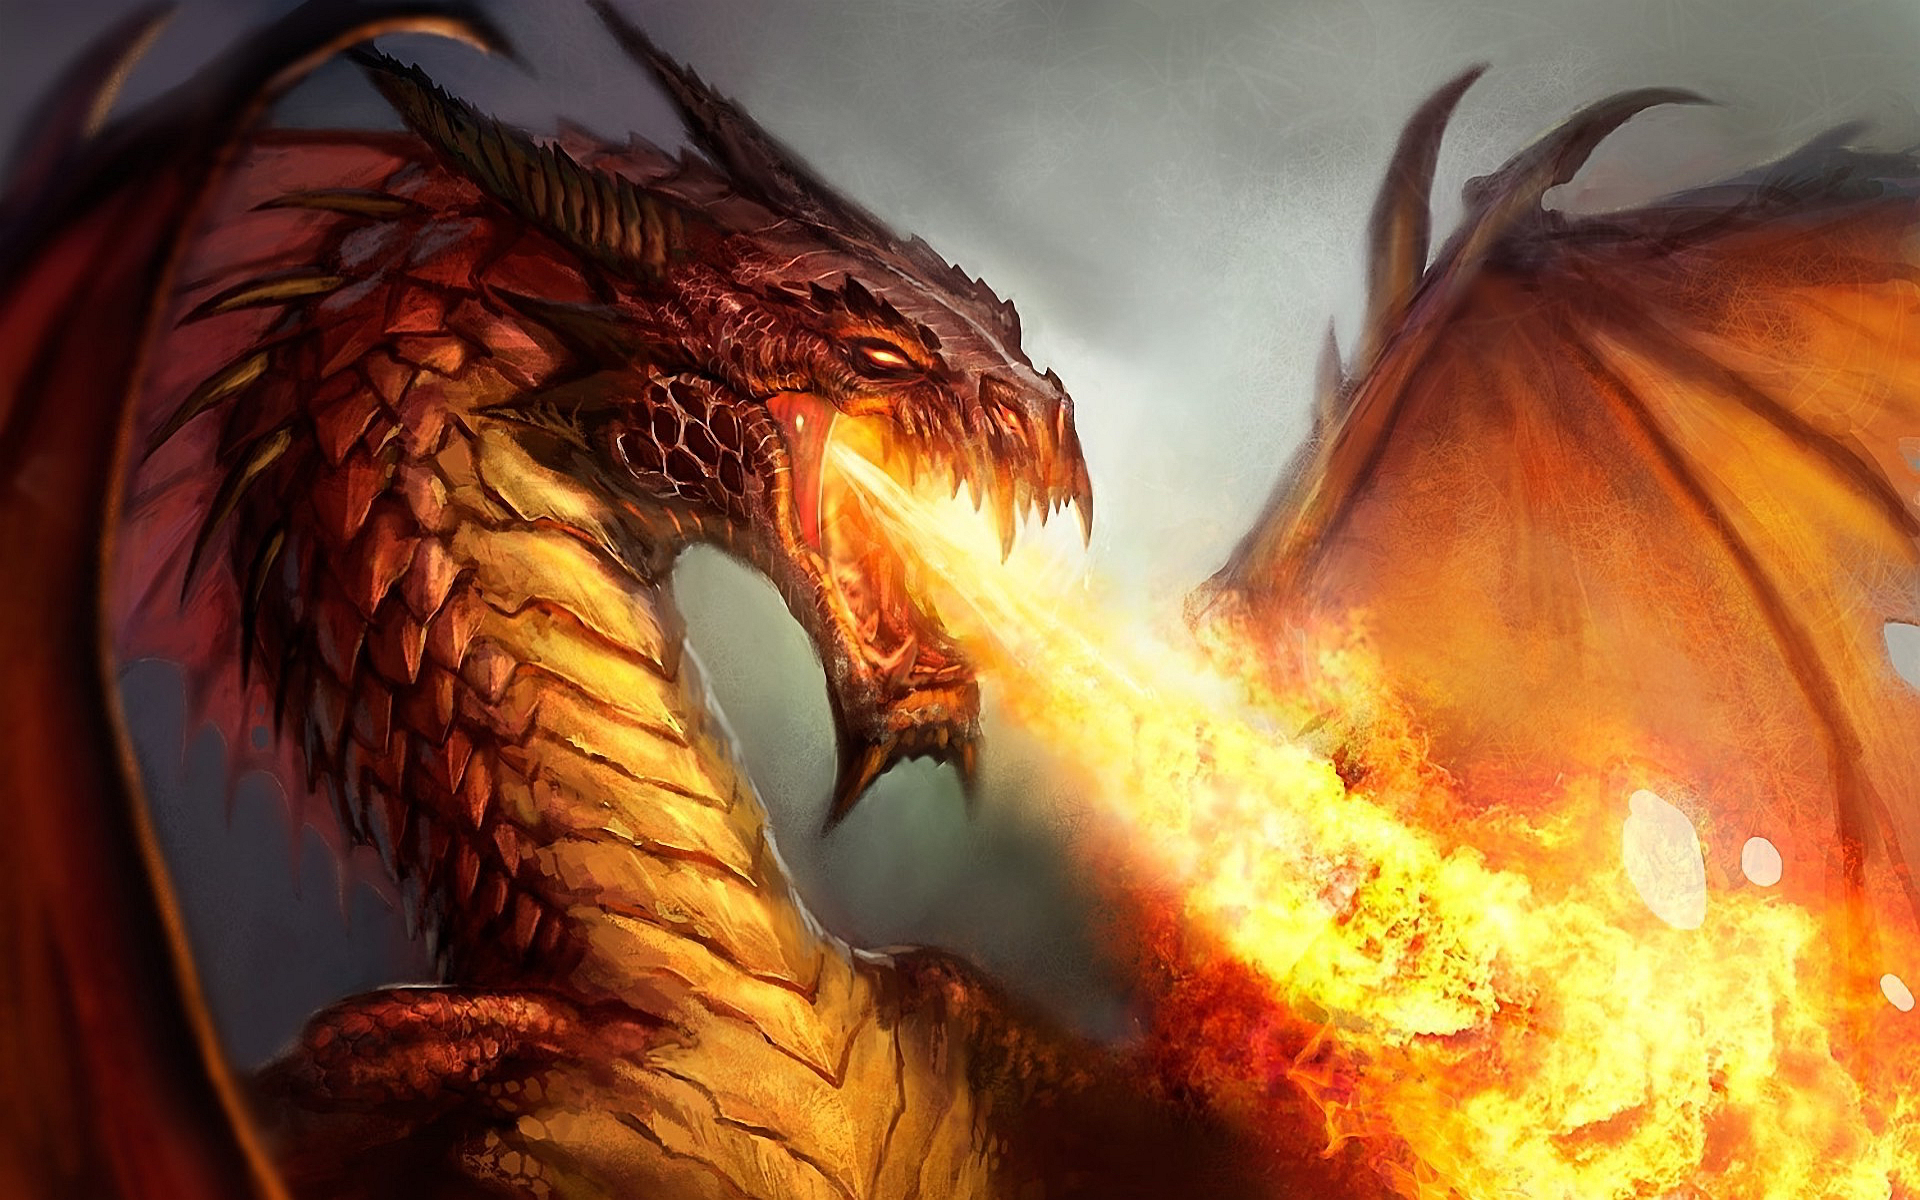 Download Wallpaper 1920x1080 Dragon, Fire, Sparkles, Mouth Full HD ...